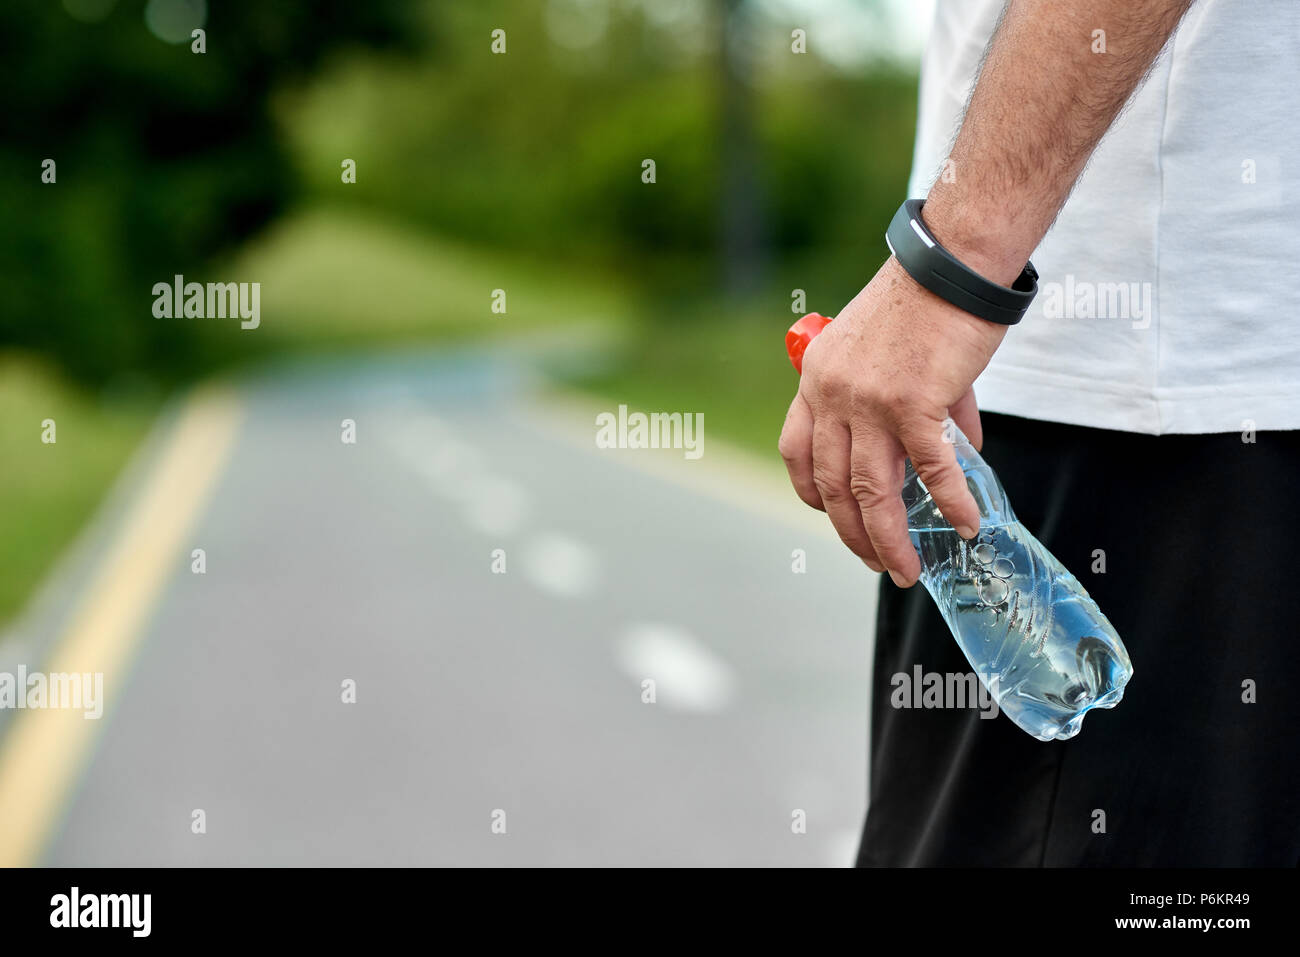 Sportsman's hand keeping water bottle runningon racetrack. Keeping body fit, muscular, strong. Maintaining healthy lifestyle. Wearing white t-shirt, black trosers, sport handwatch. Ready to run. - Stock Image